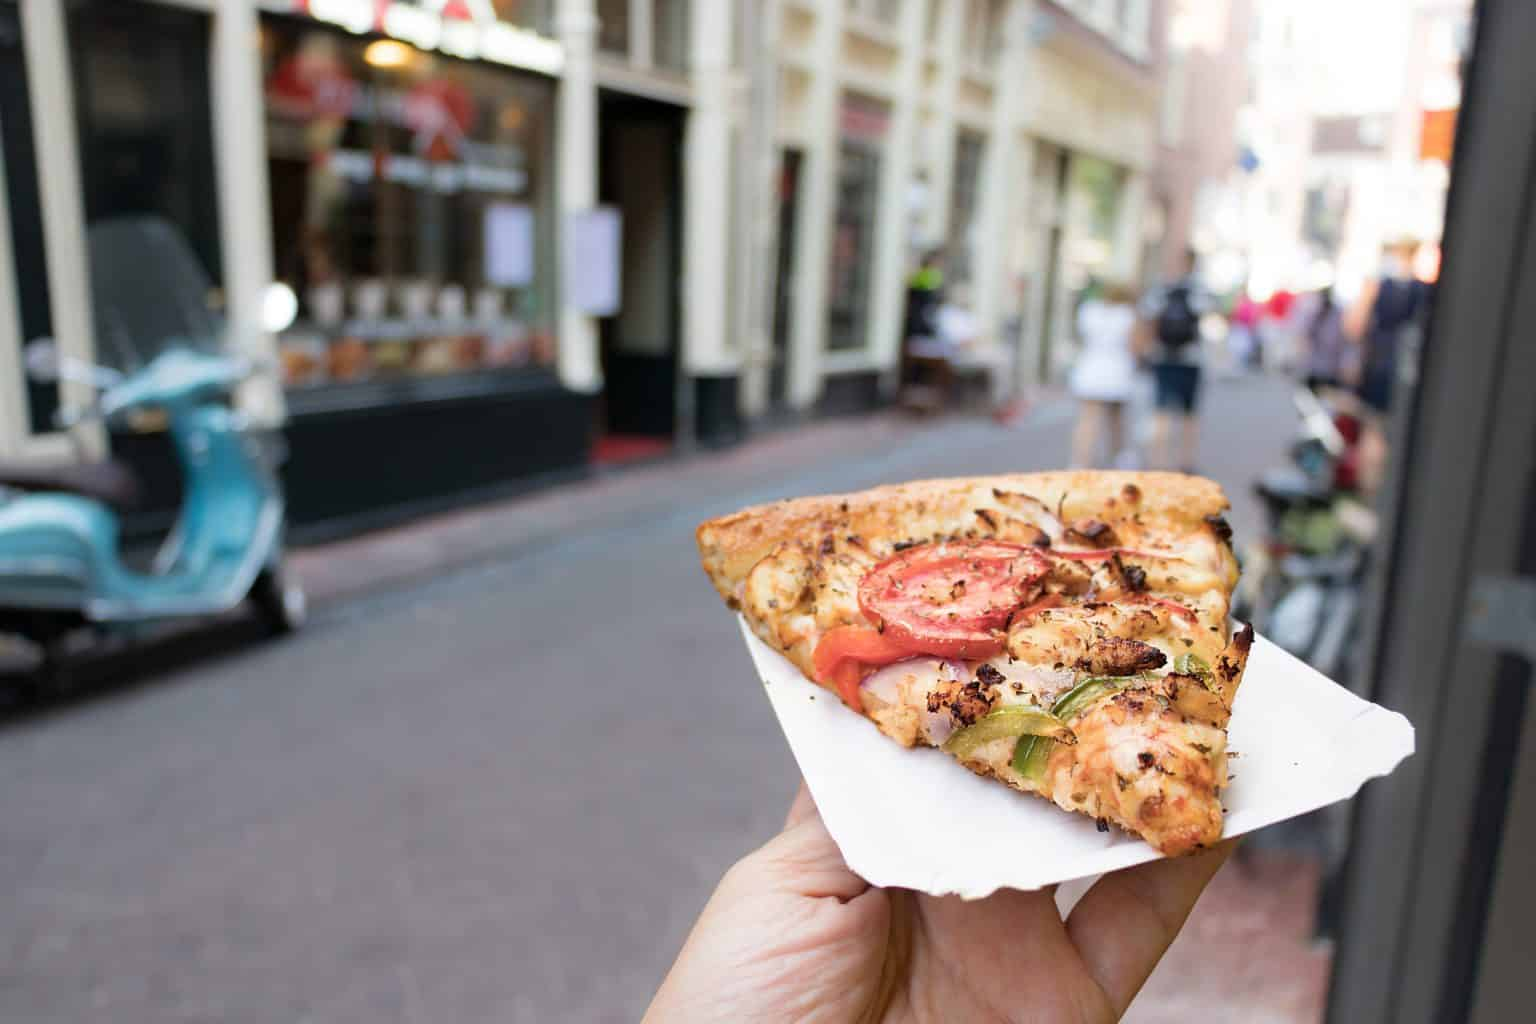 Enjoy a slice of pizza at Amsterdam's San Marco Pizzeria, home to the only boat-through in the world.